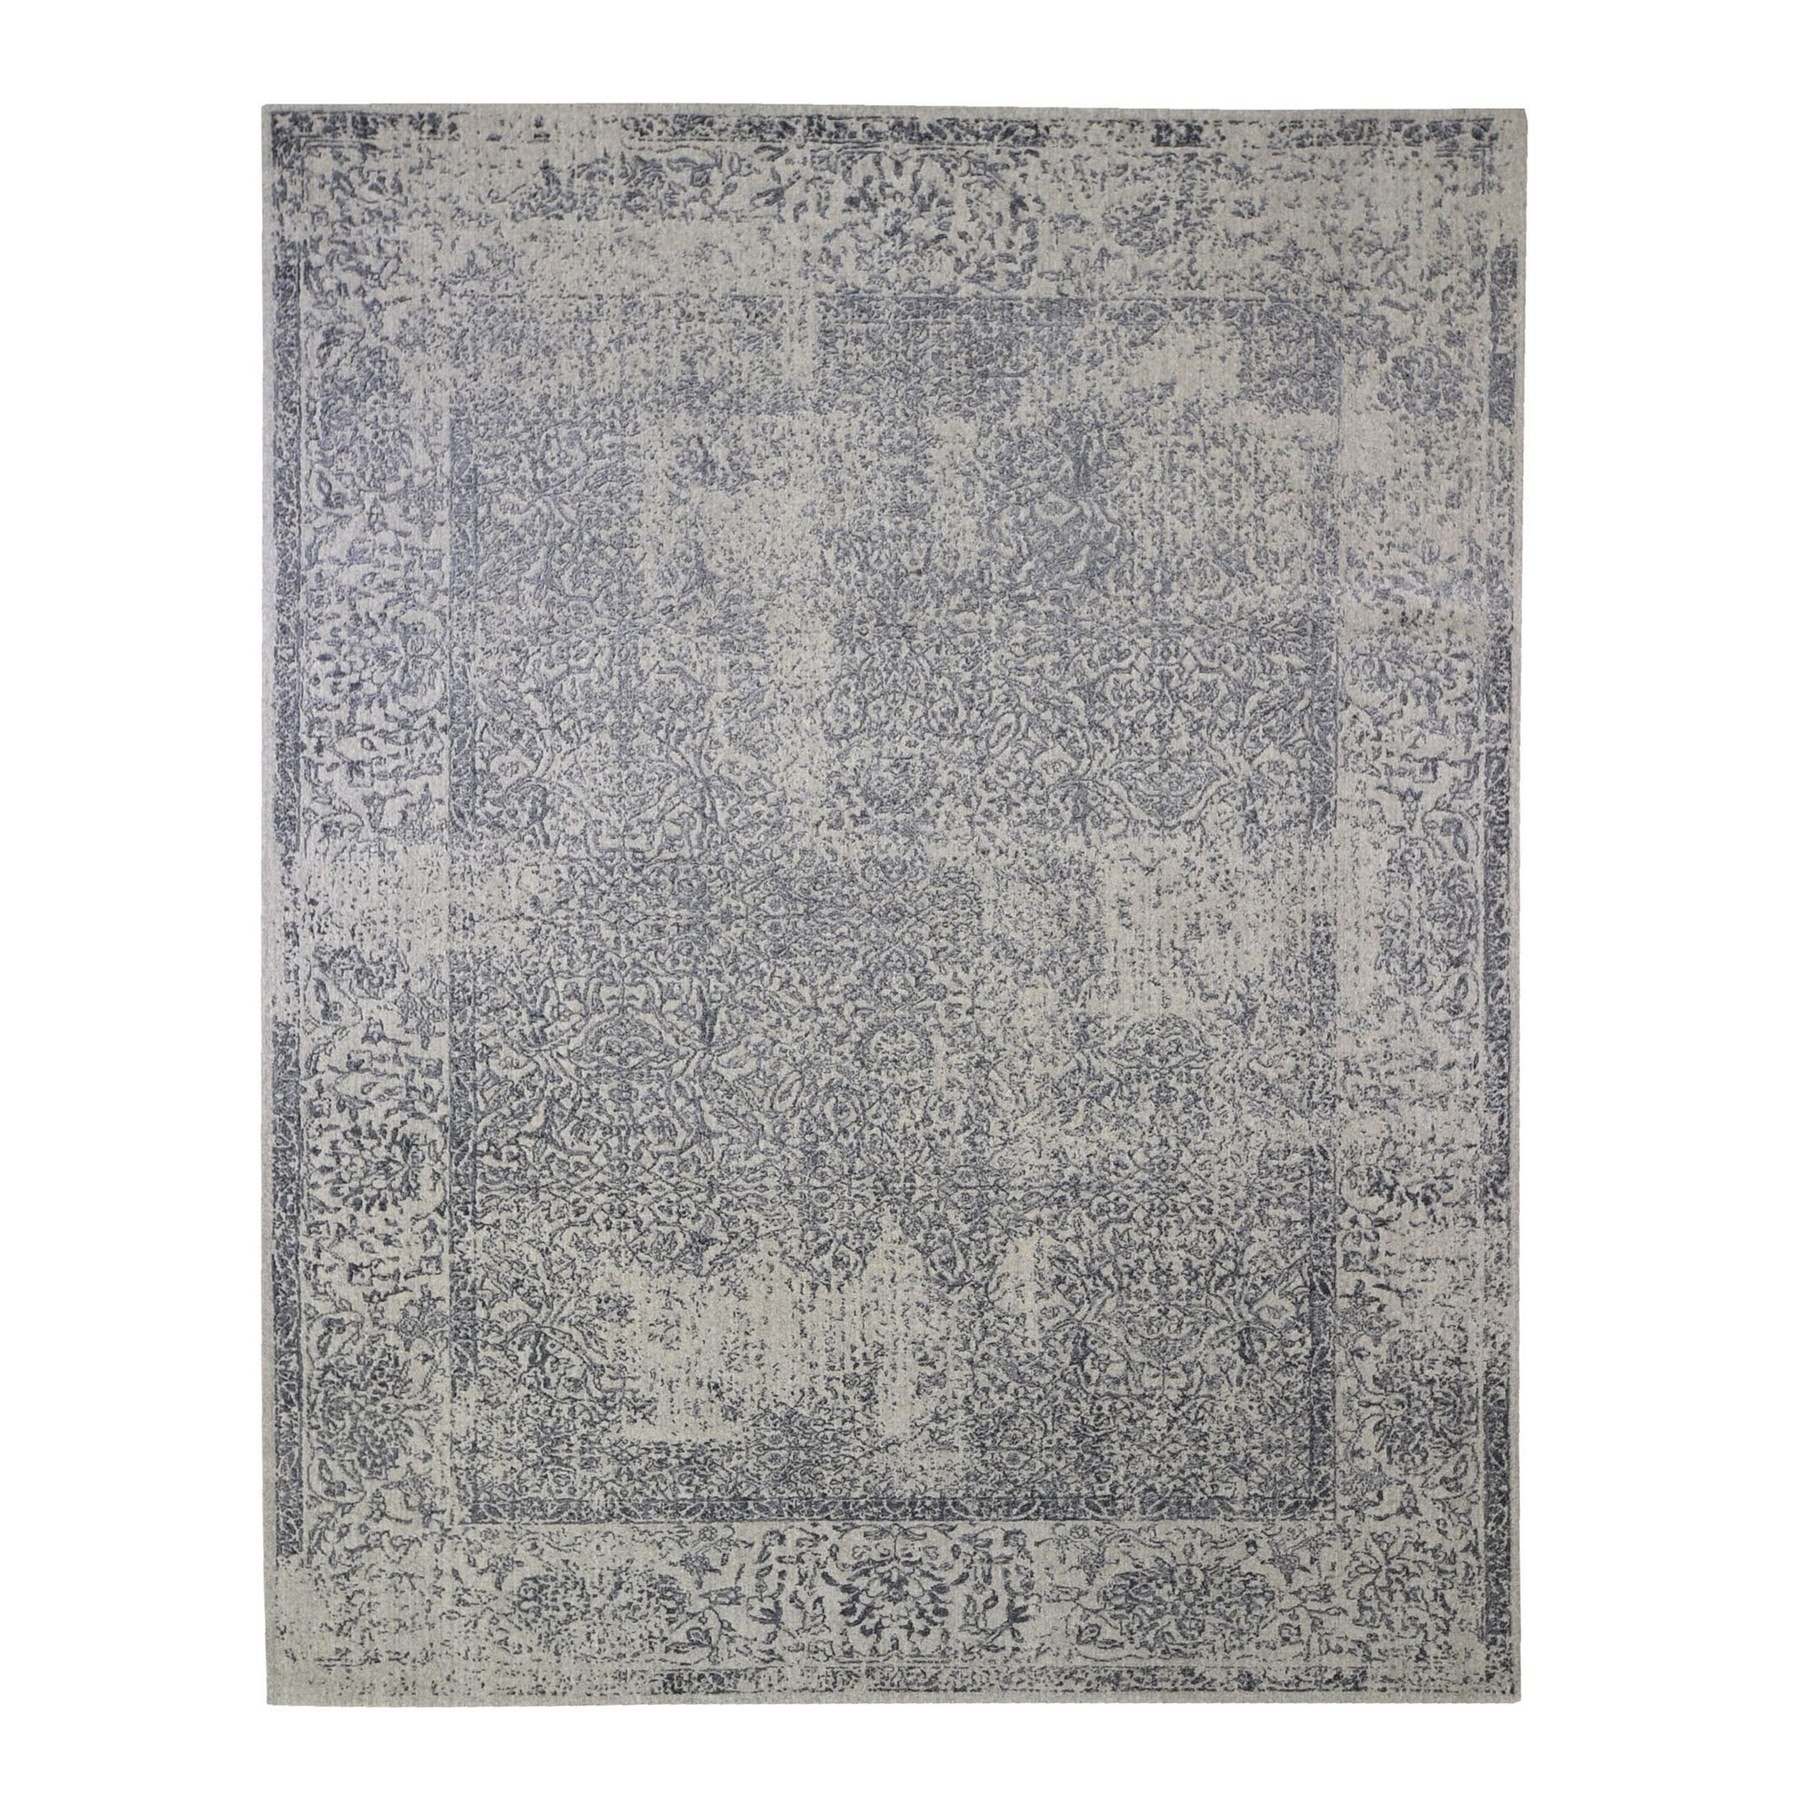 Mid Century Modern Collection Hand Loomed Grey Rug No: 1132876